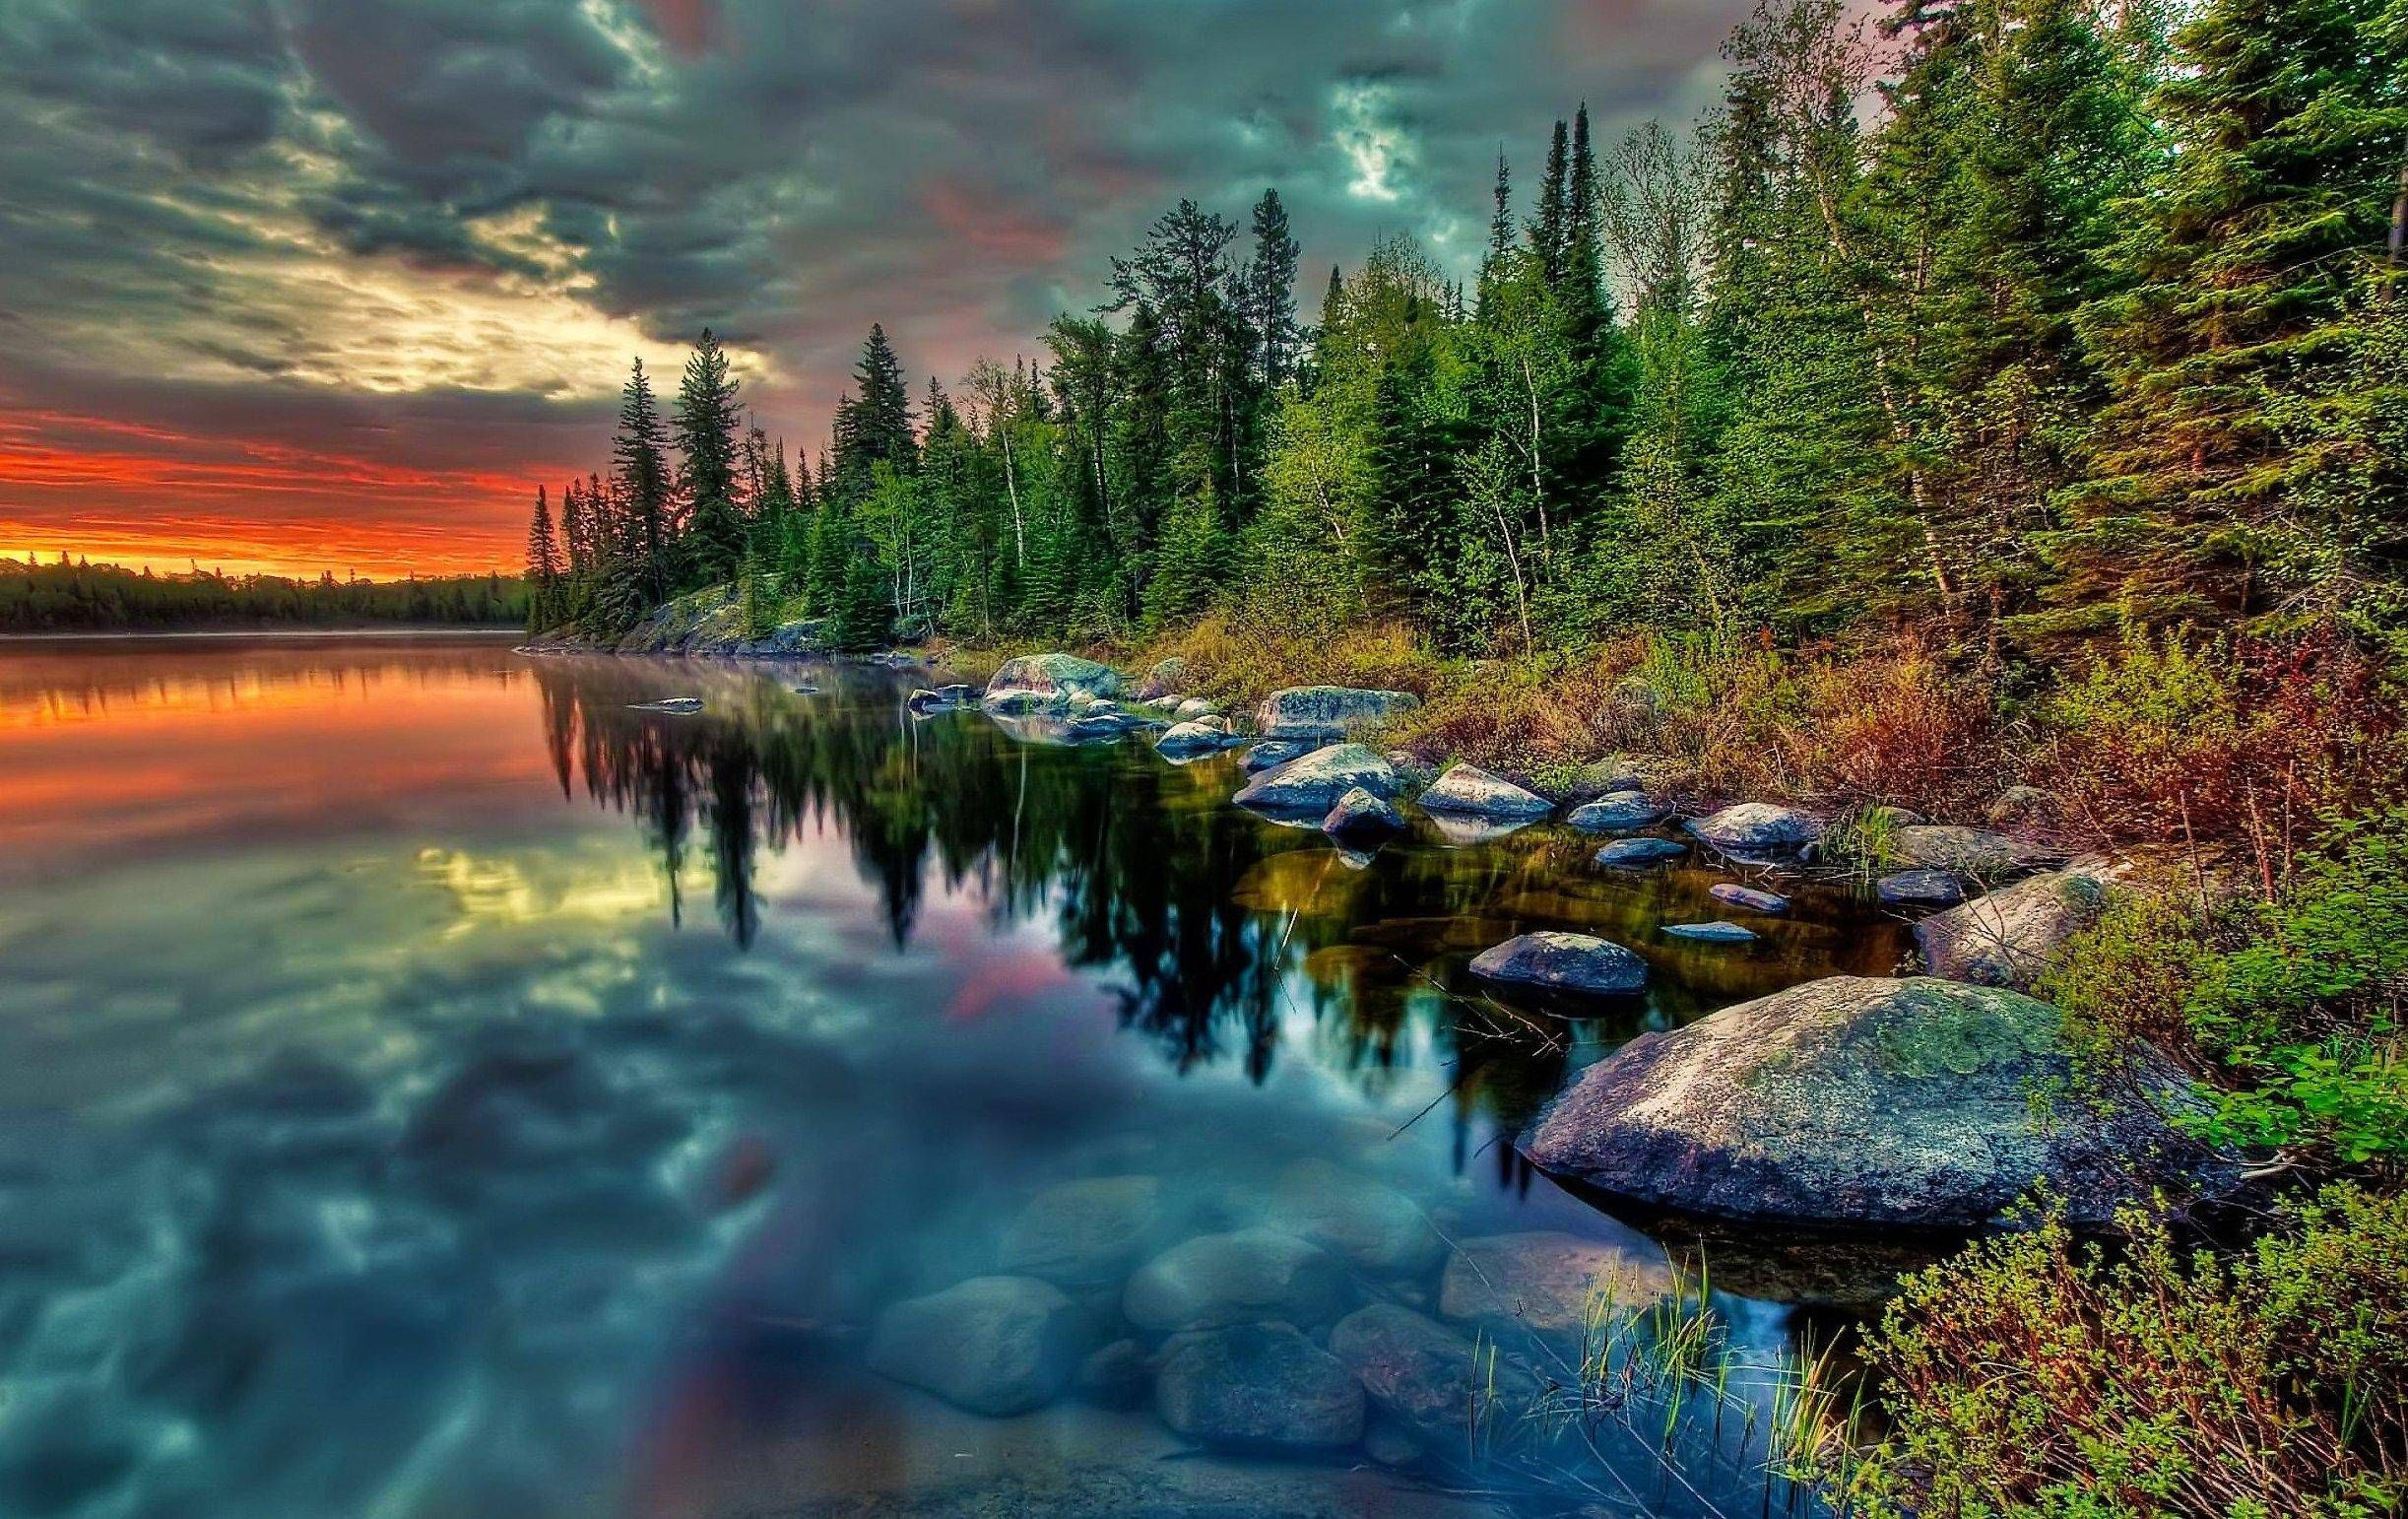 Reflections, A beautiful lake scene with reflections of the sunset and sky in the lake, as well as the reflection of the trees and rocks alo...